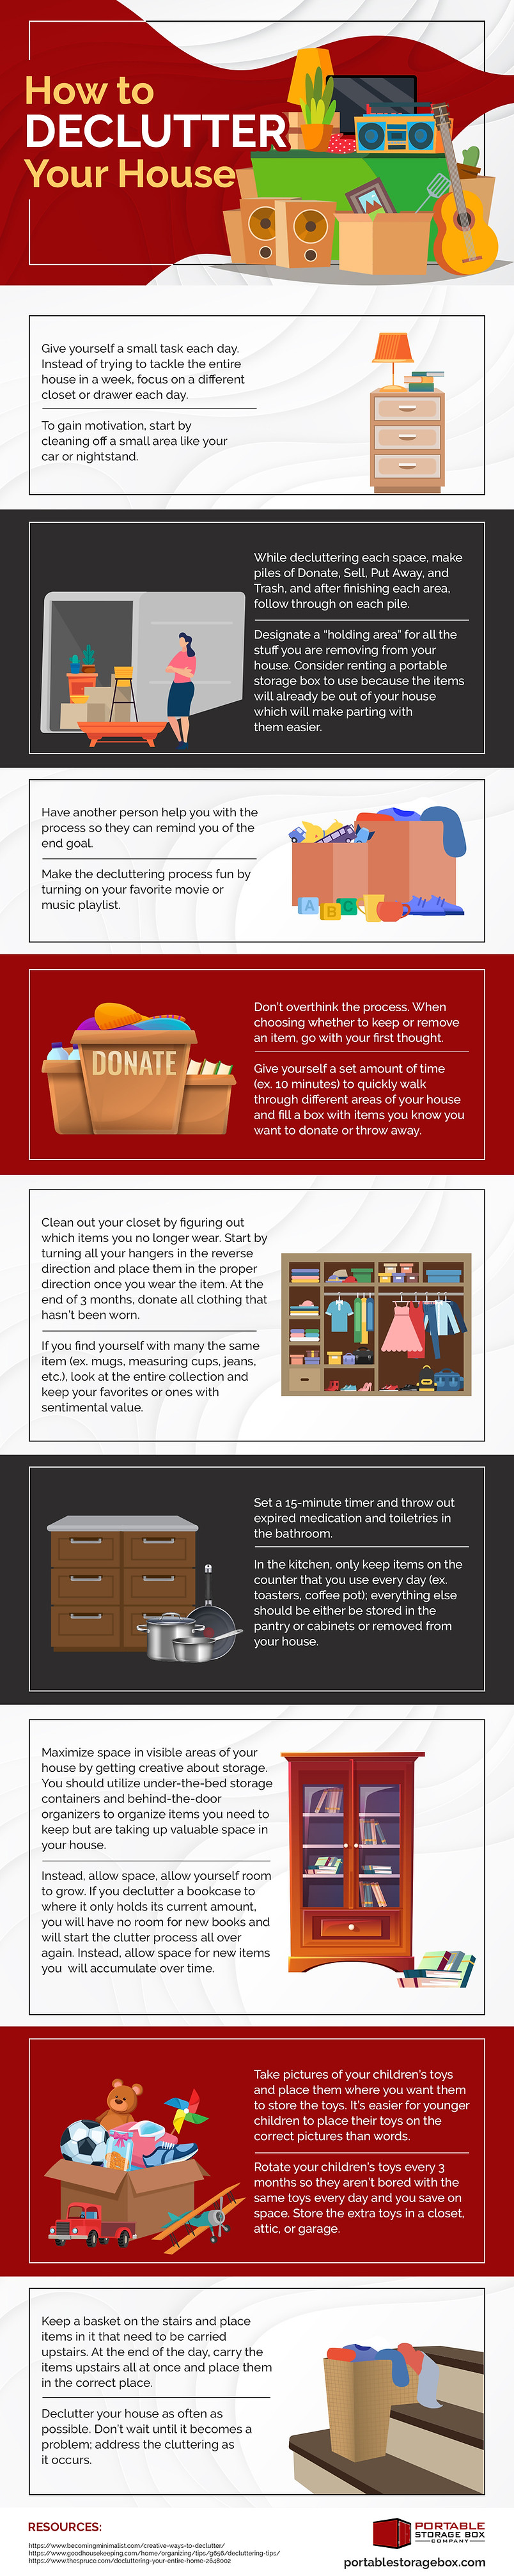 How-to-Declutter-Your-House.jpg